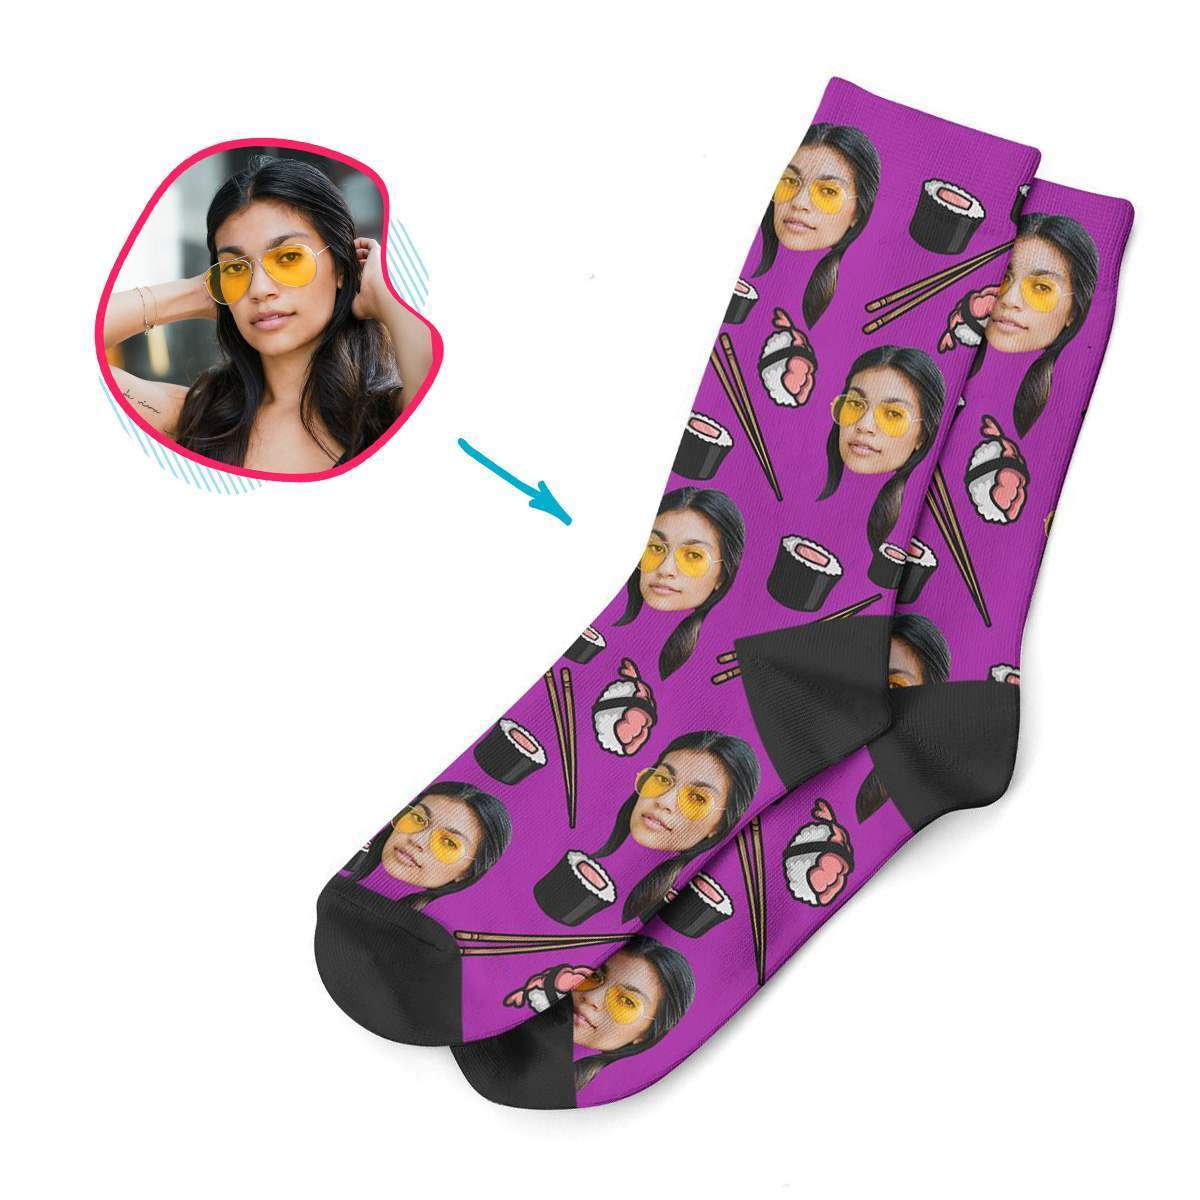 purple Sushi socks personalized with photo of face printed on them